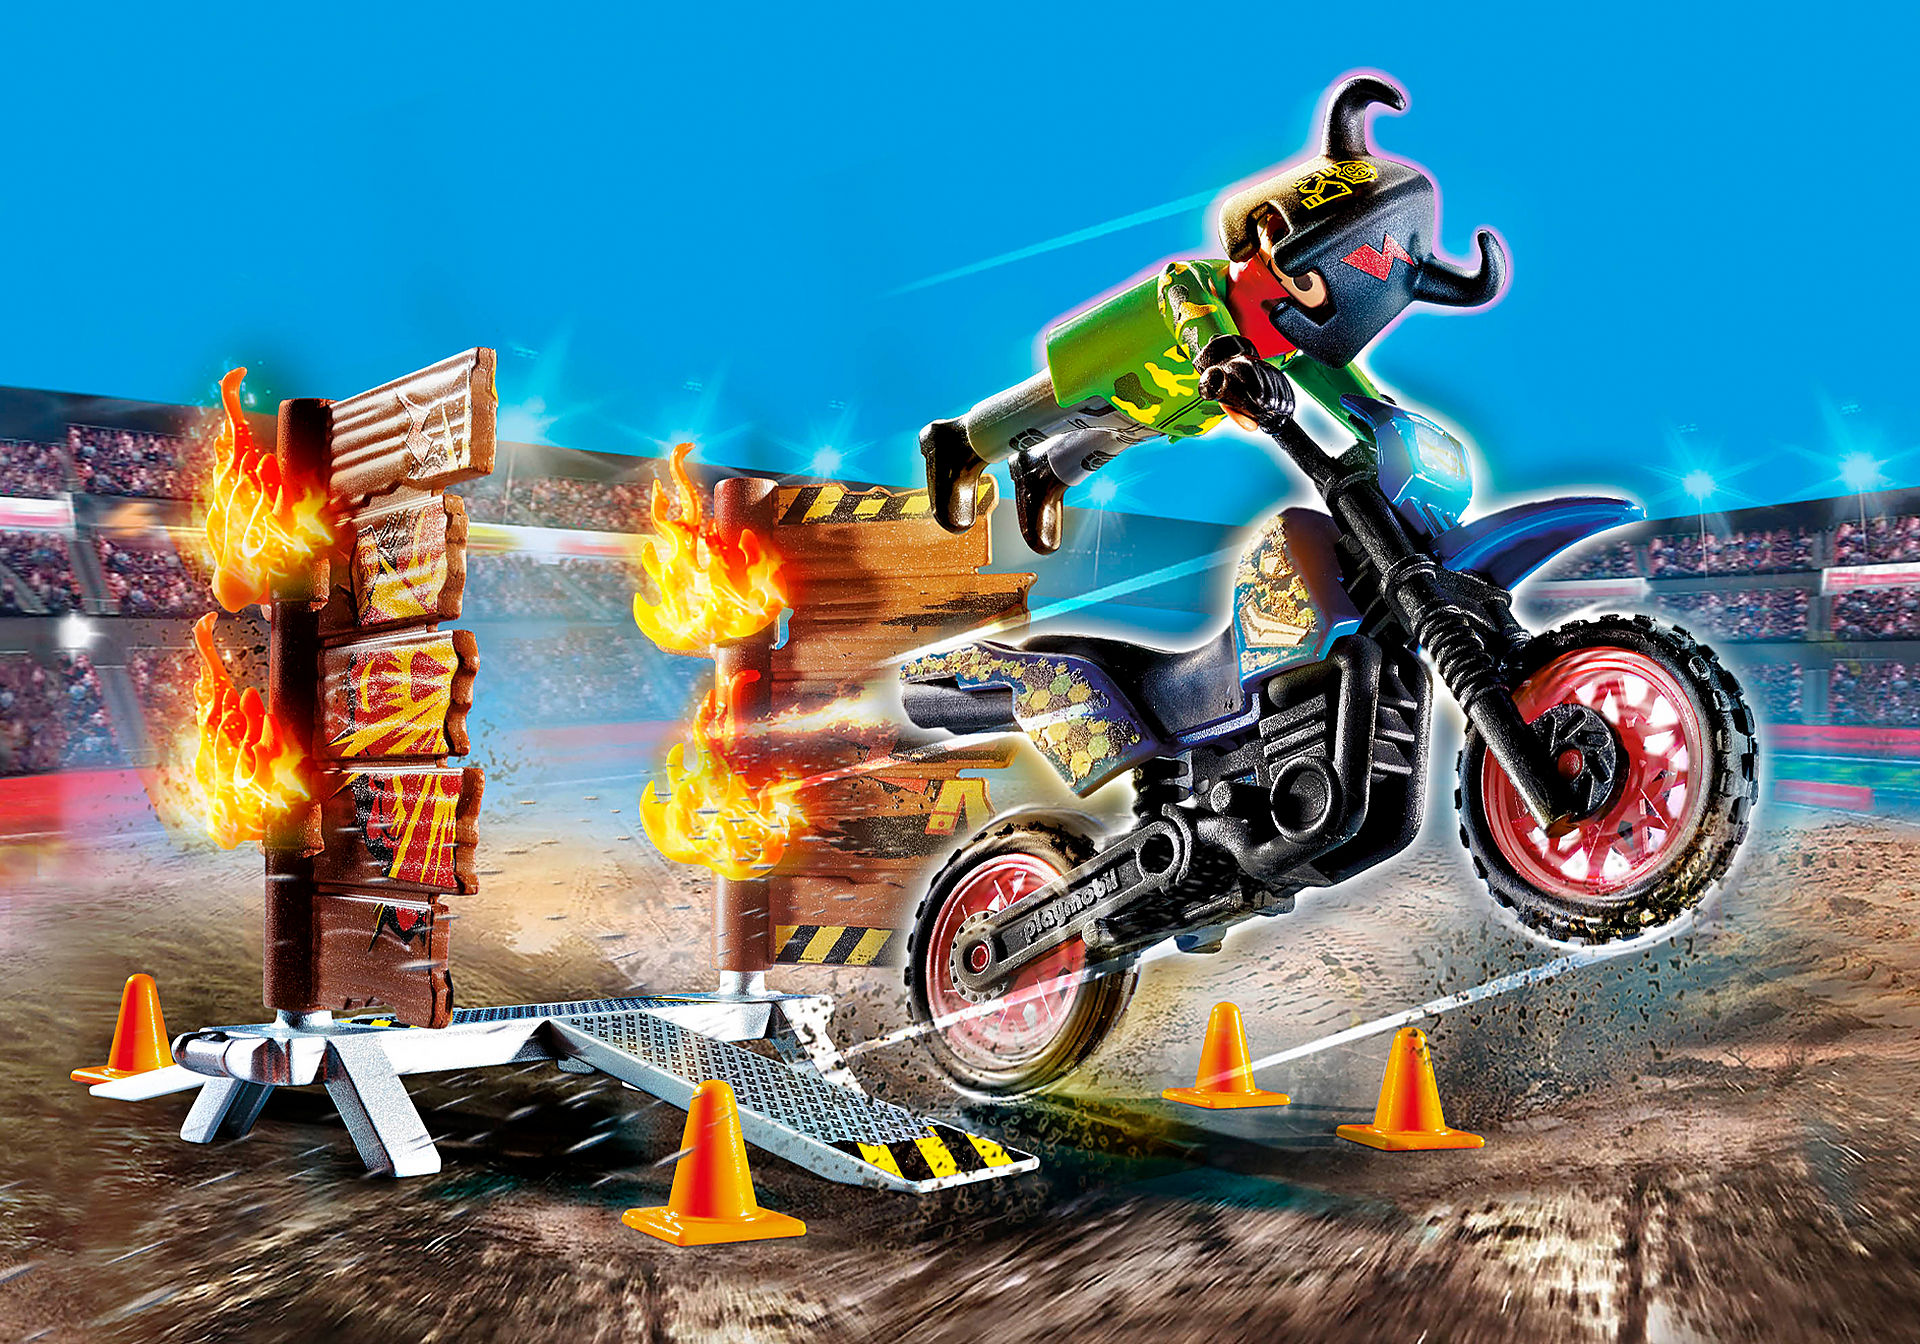 70553 Stunt Show Motocross with Fiery Wall zoom image1